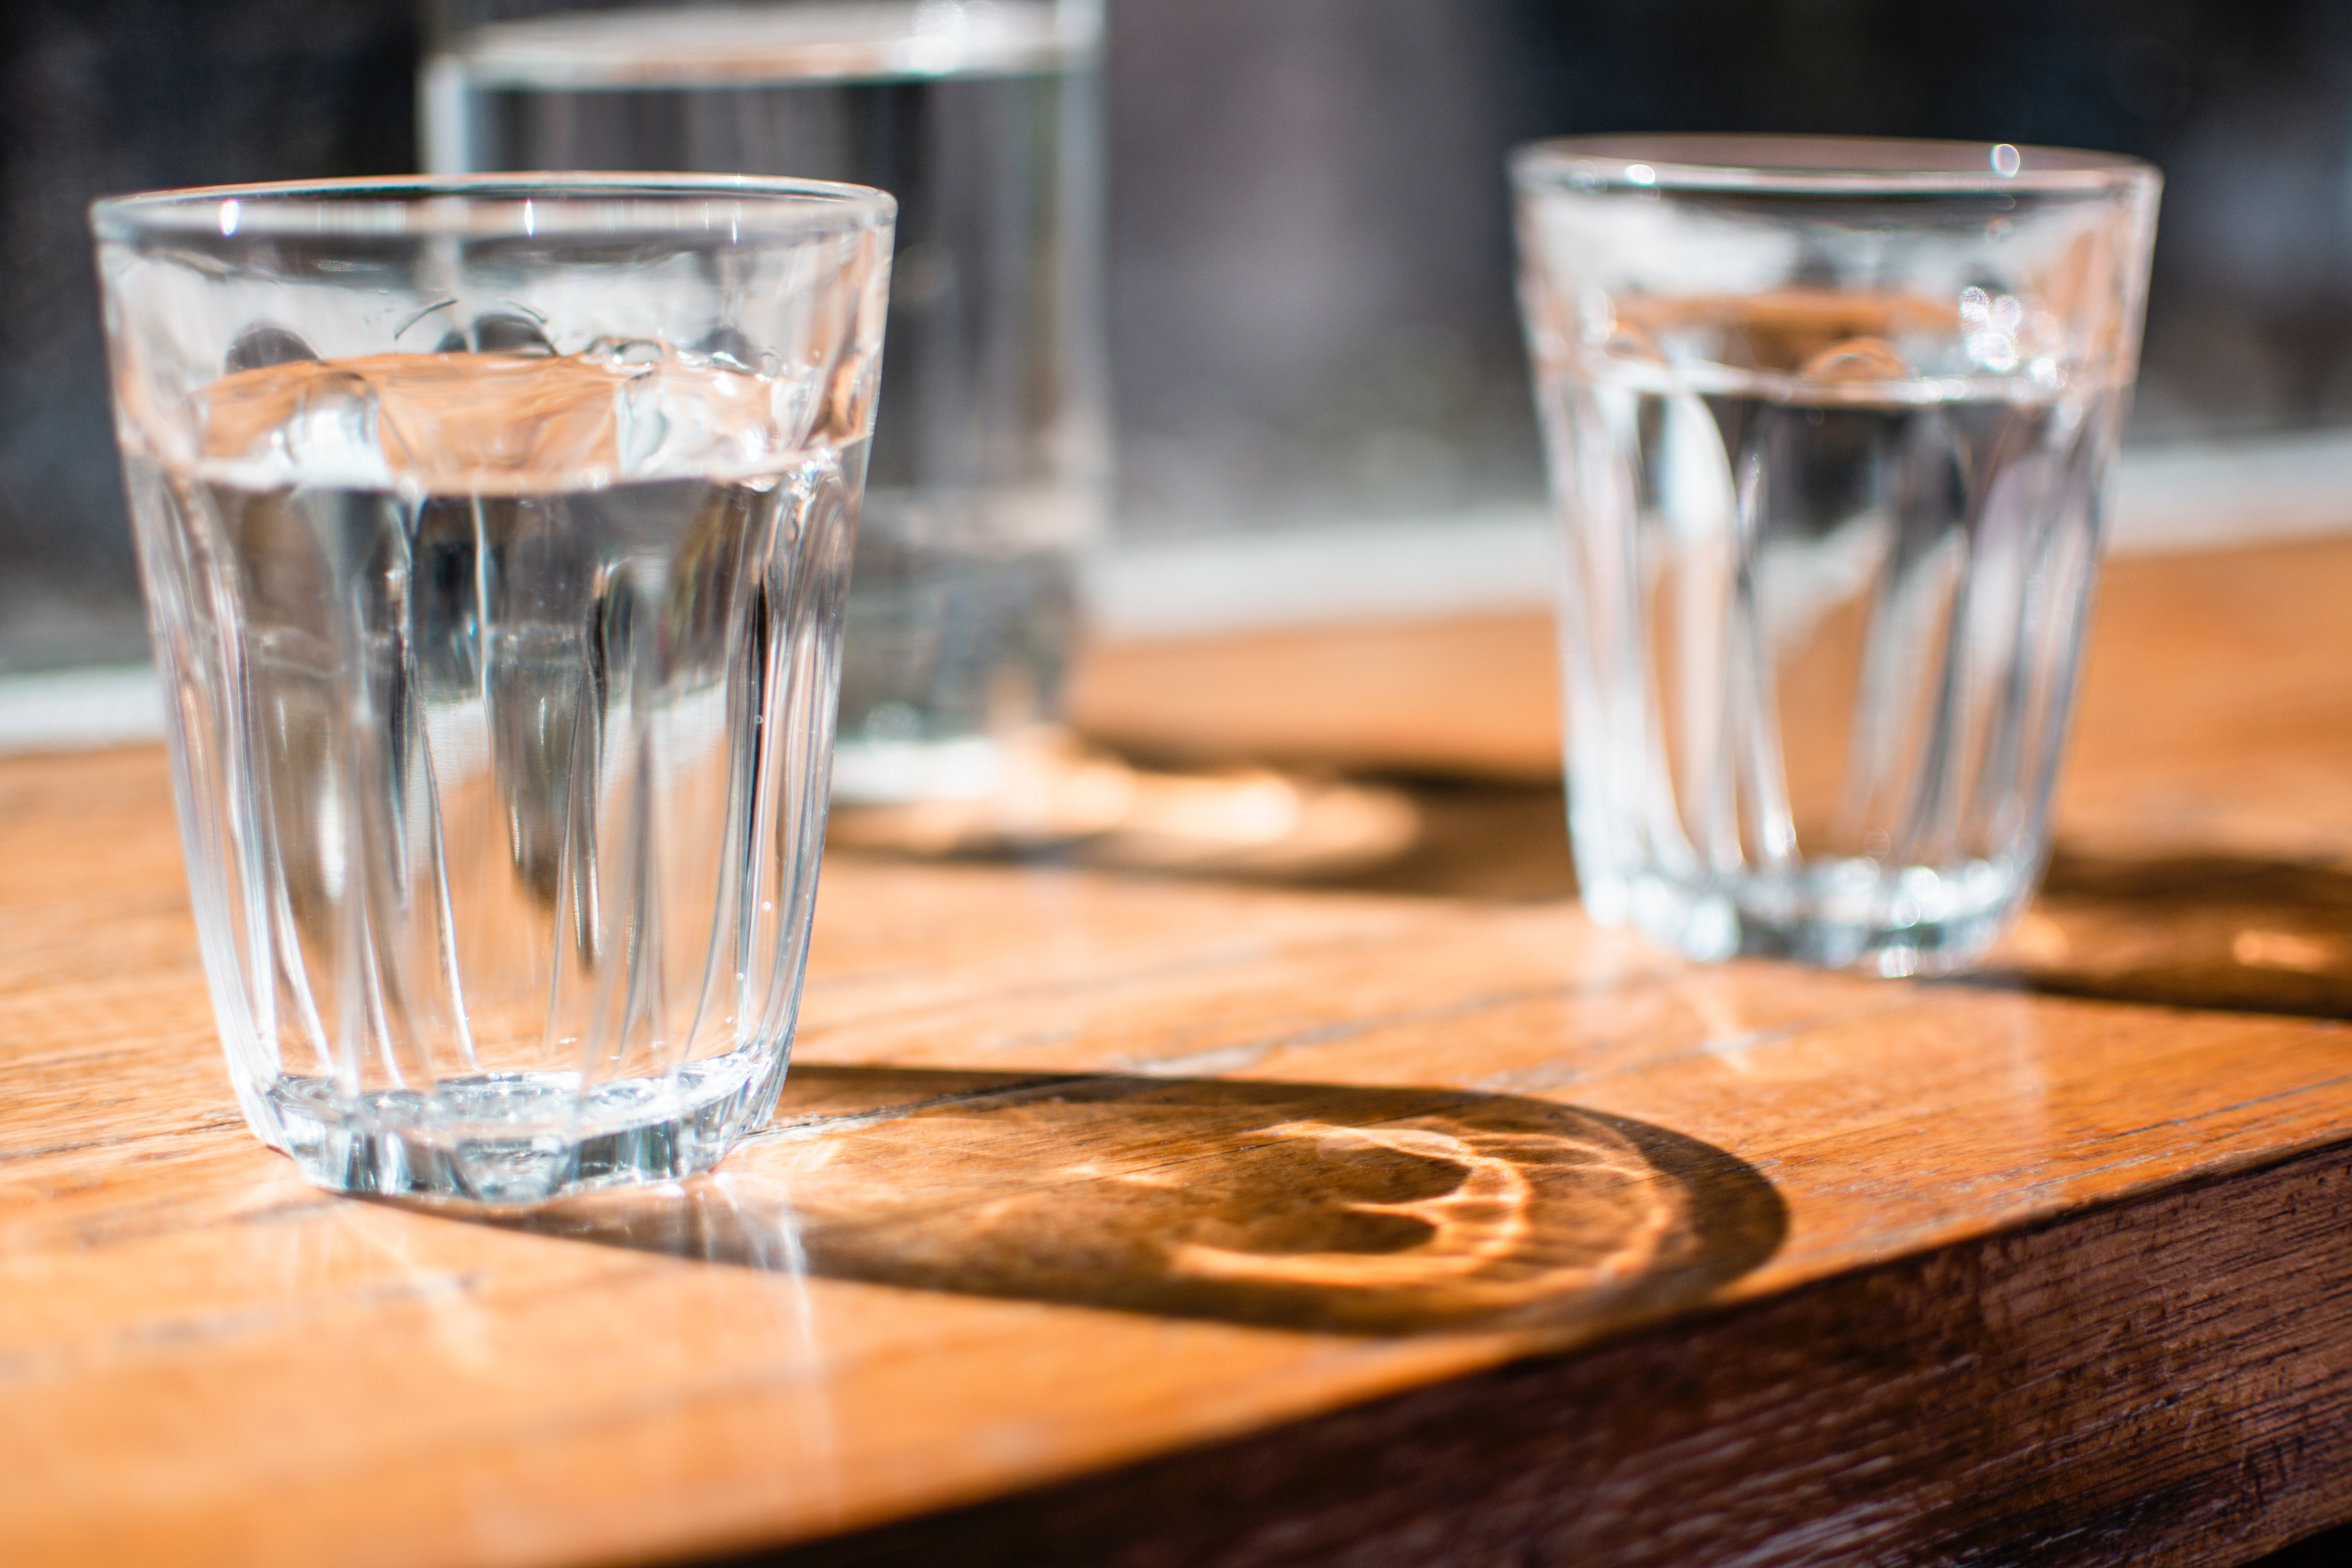 Two glasses of water.